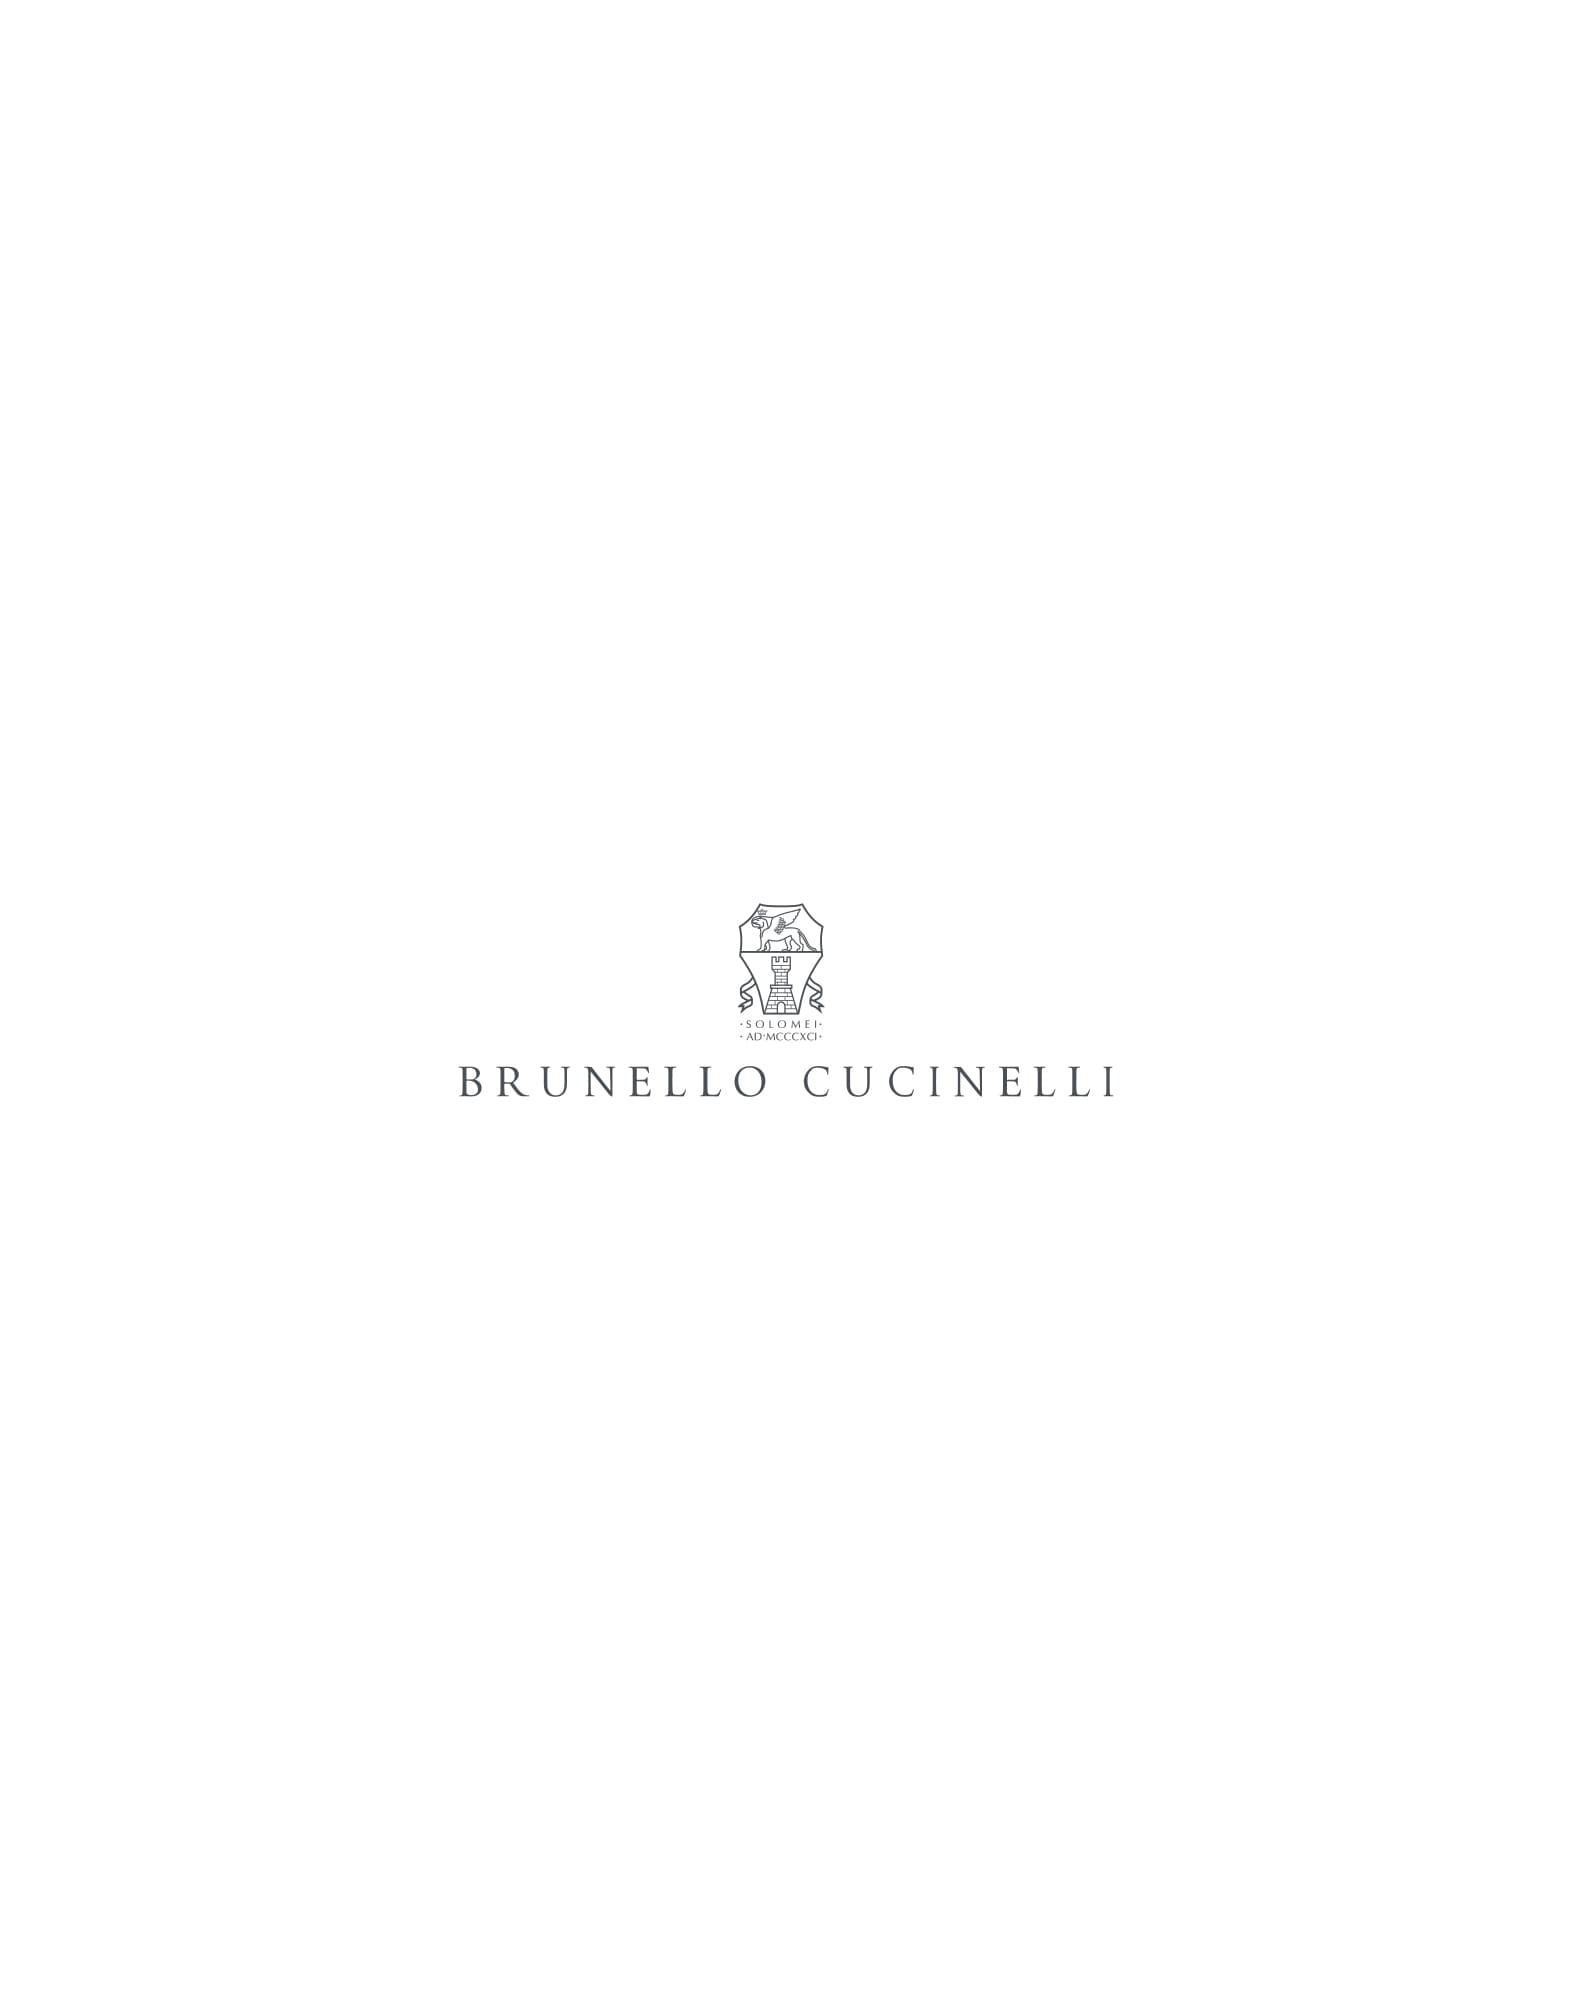 Portfolio Maple Man - Brunello Cucinelli